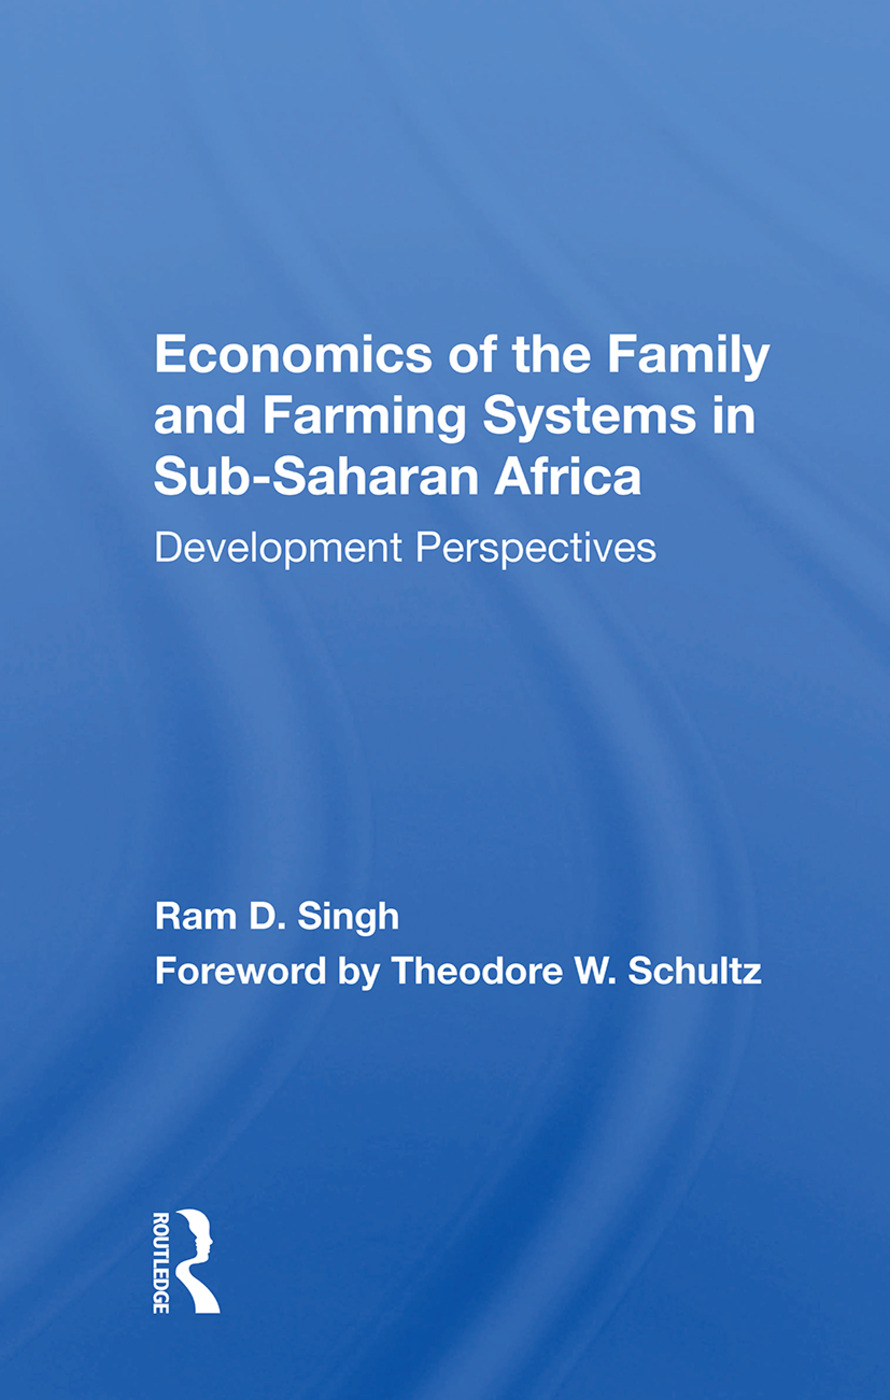 Economics Of The Family And Farming Systems In Sub-saharan Africa: Development Perspectives, 1st Edition (Paperback) book cover